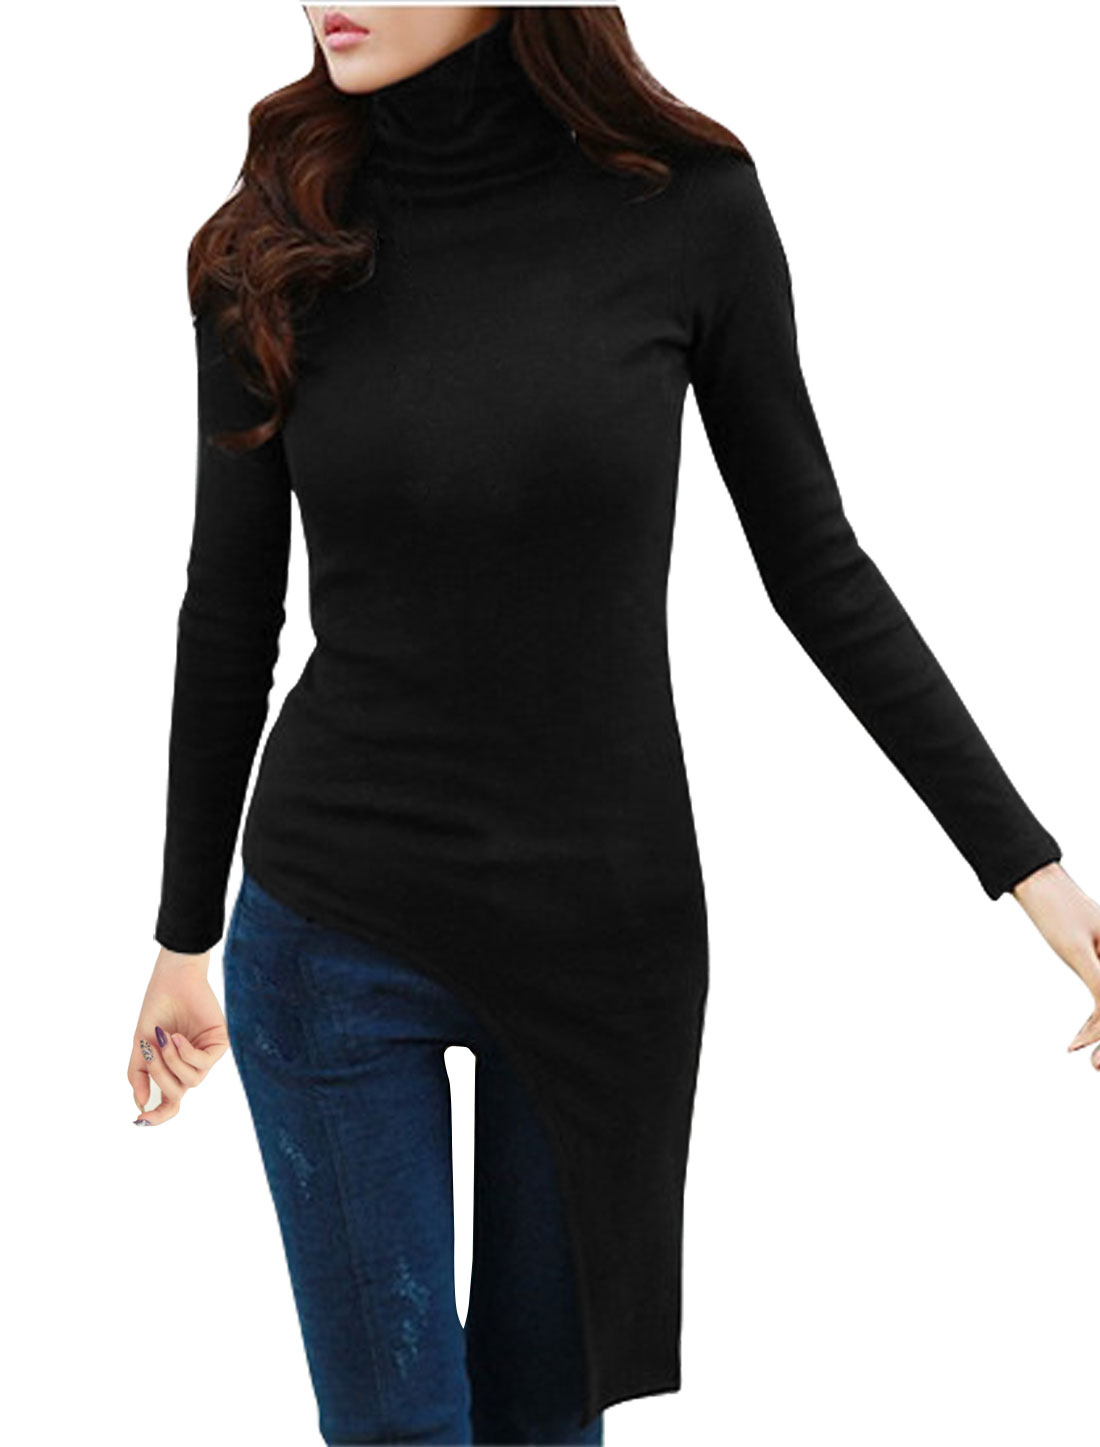 Women Turtle Neck Asymmetric Hem Slim Fit Top Black M